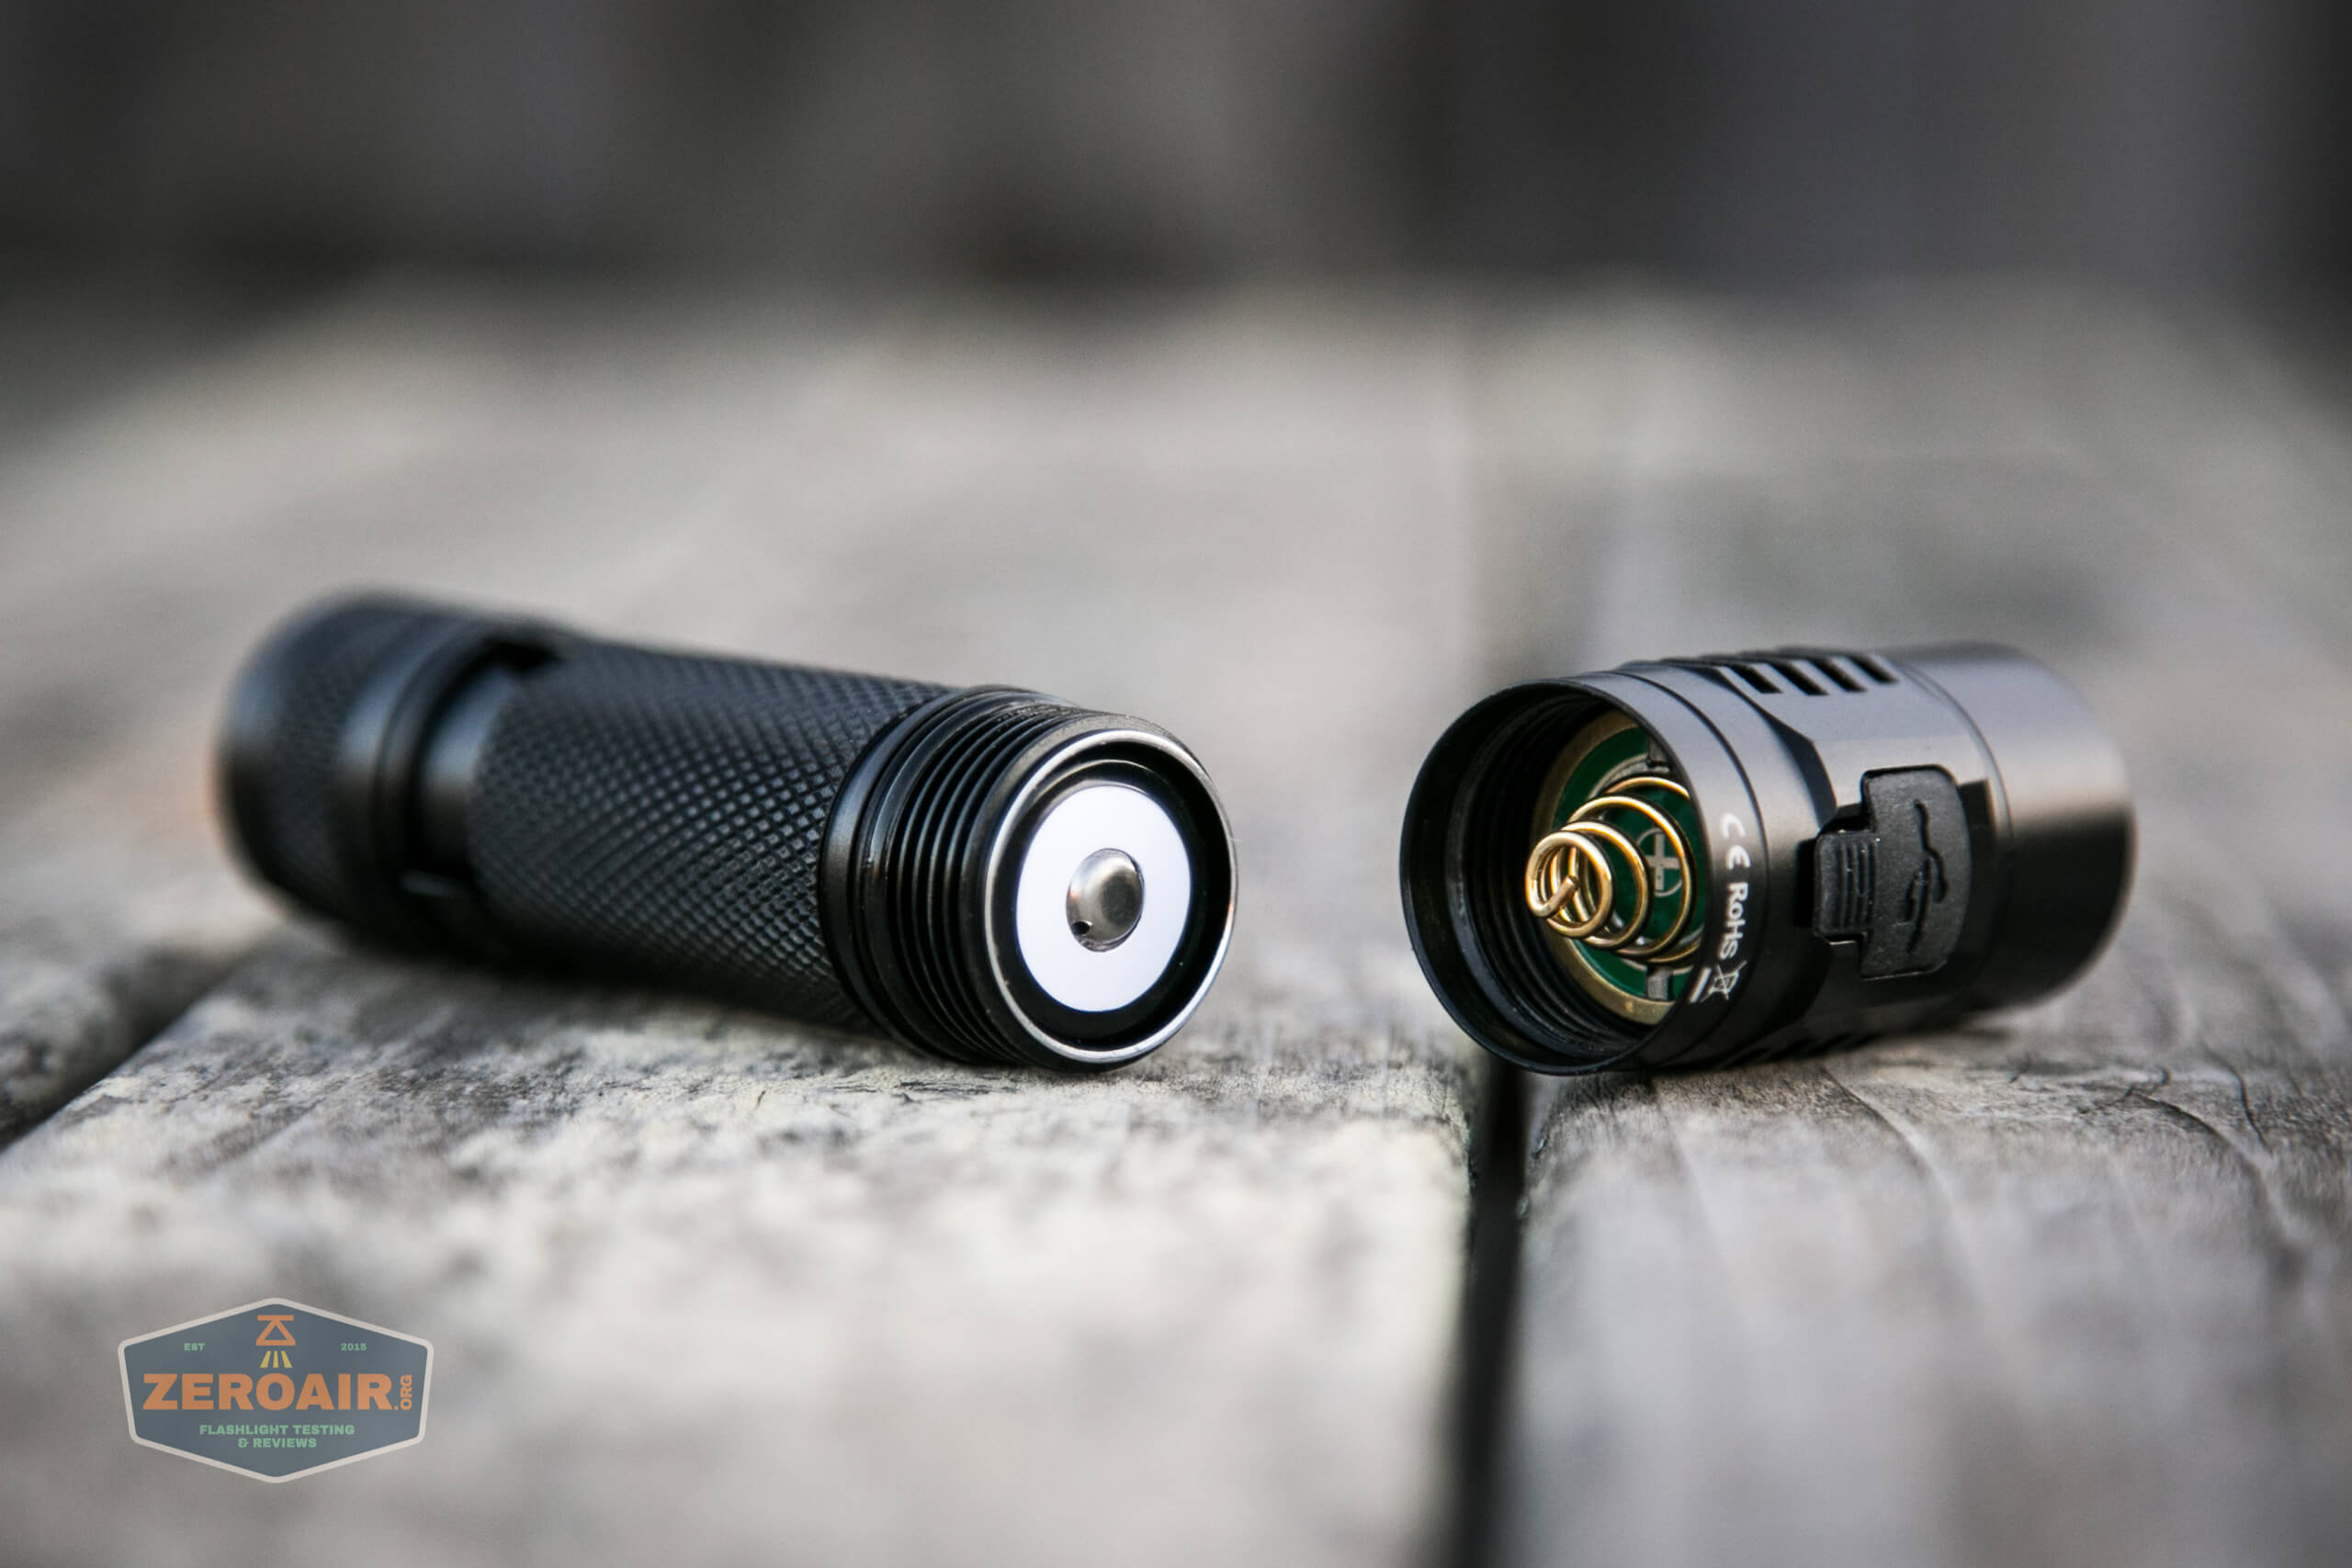 sofirn sc31 pro Andúril 18650 flashlight cell installed